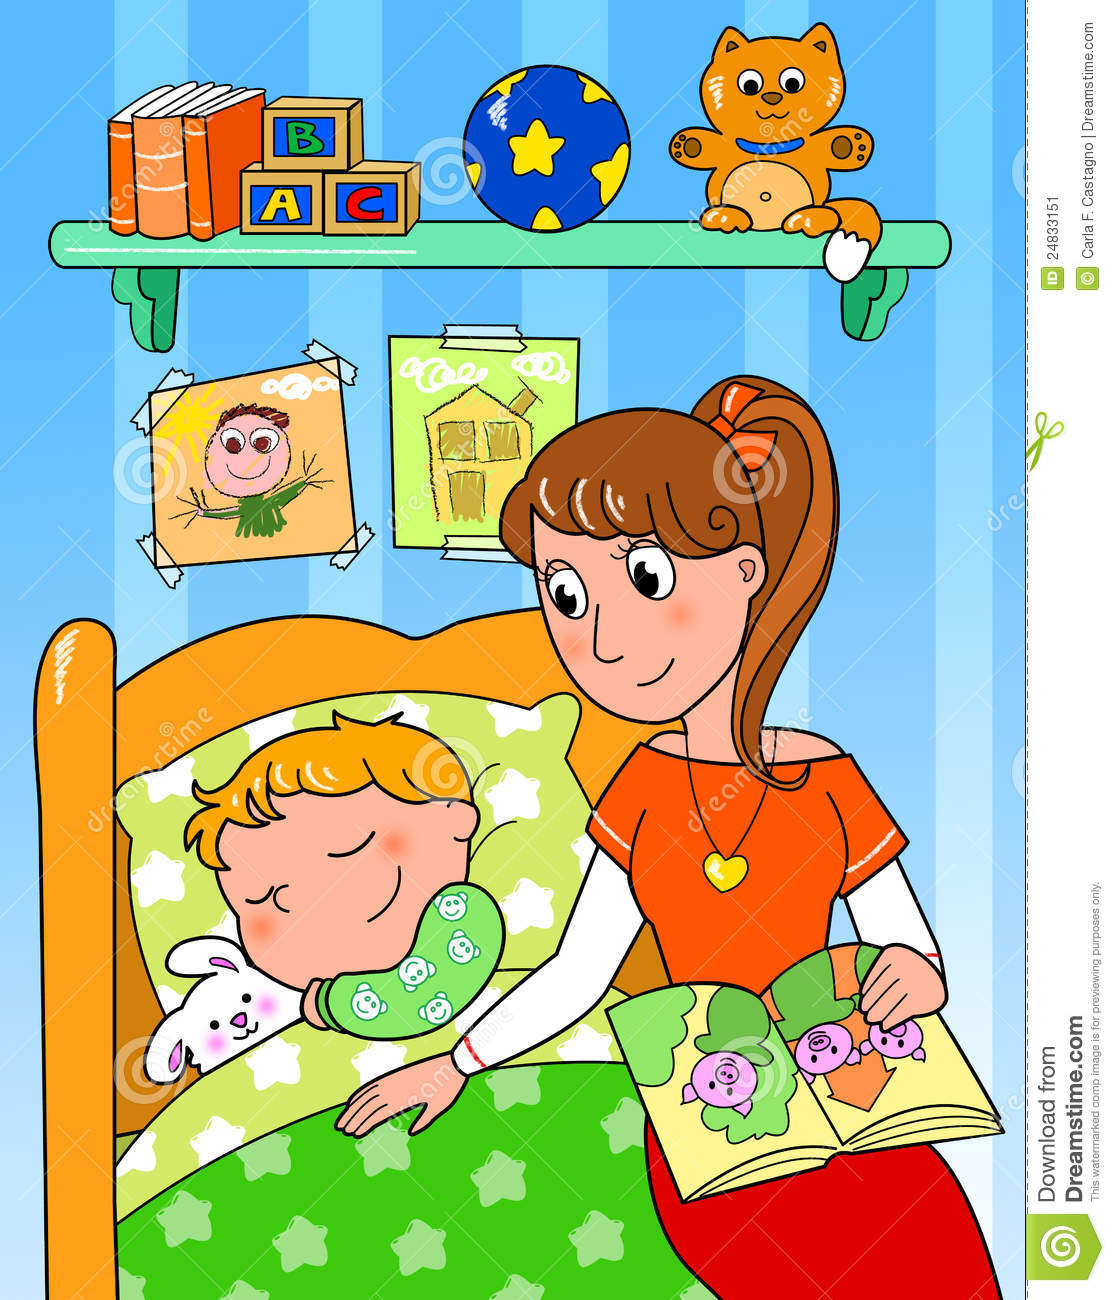 Good Download Child At Bed With Mom Stock Illustration. Illustration Of Sleeping    24833151